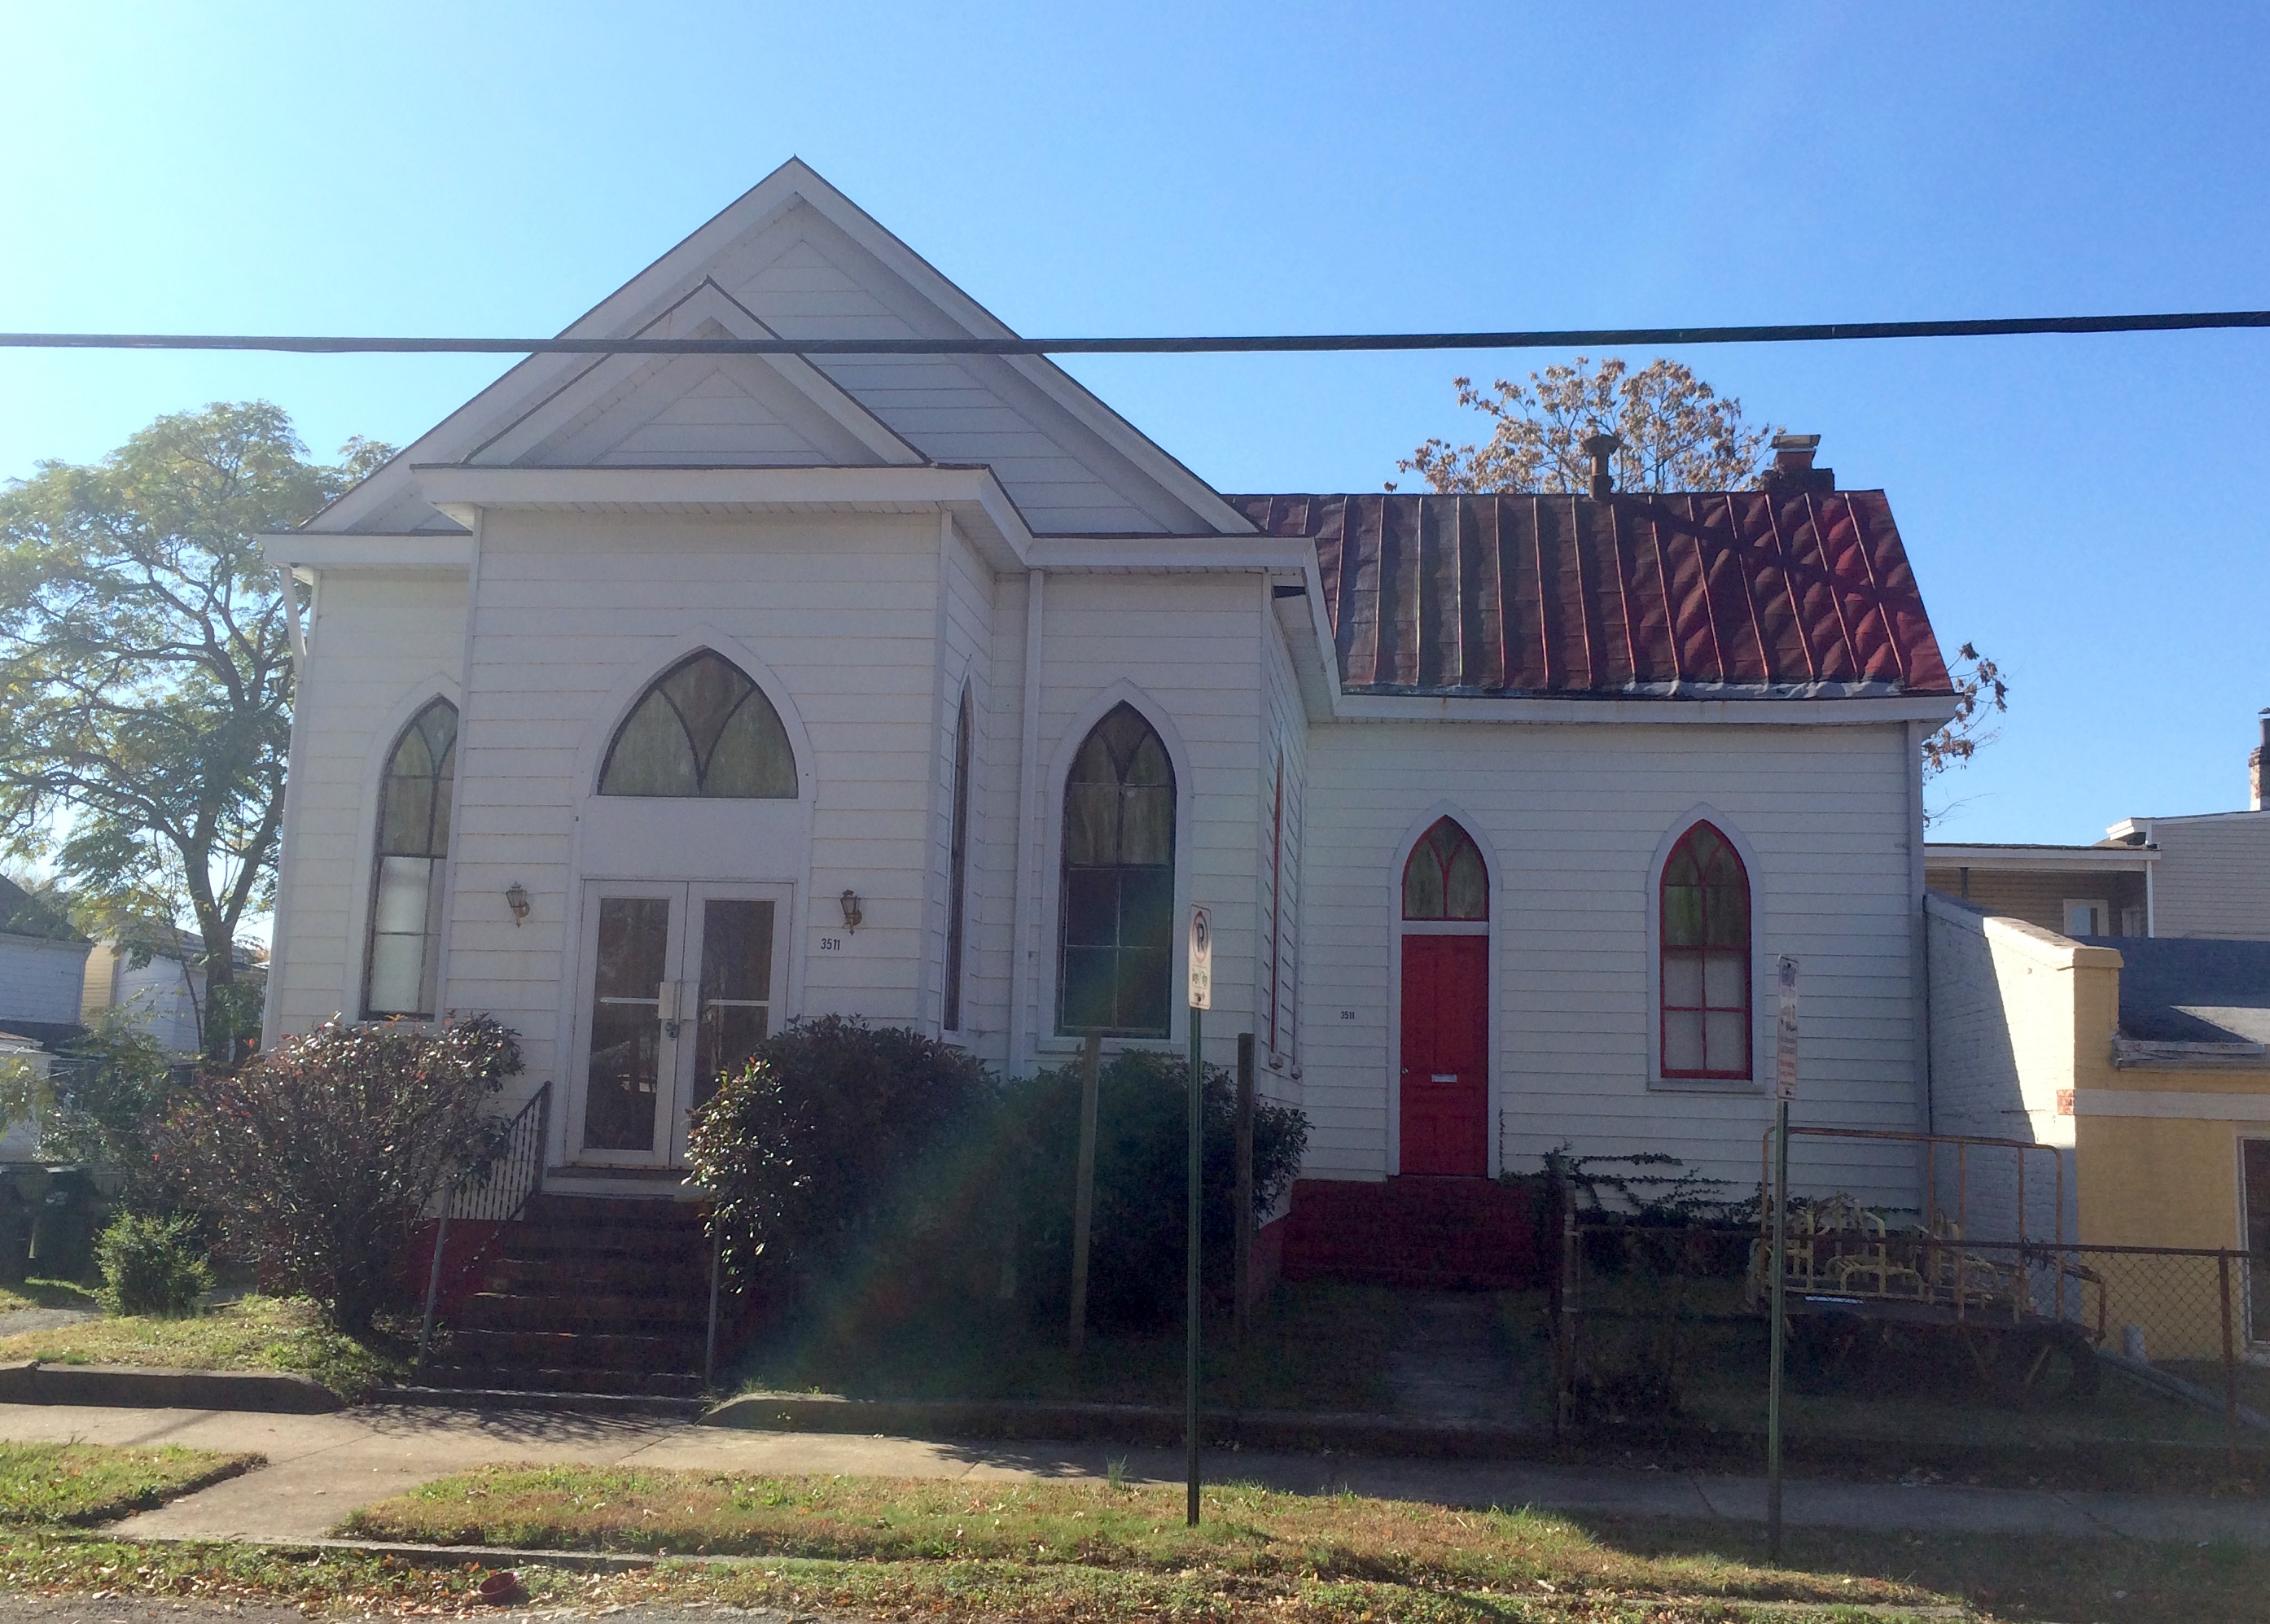 Church/day care/house for sale - CHPN